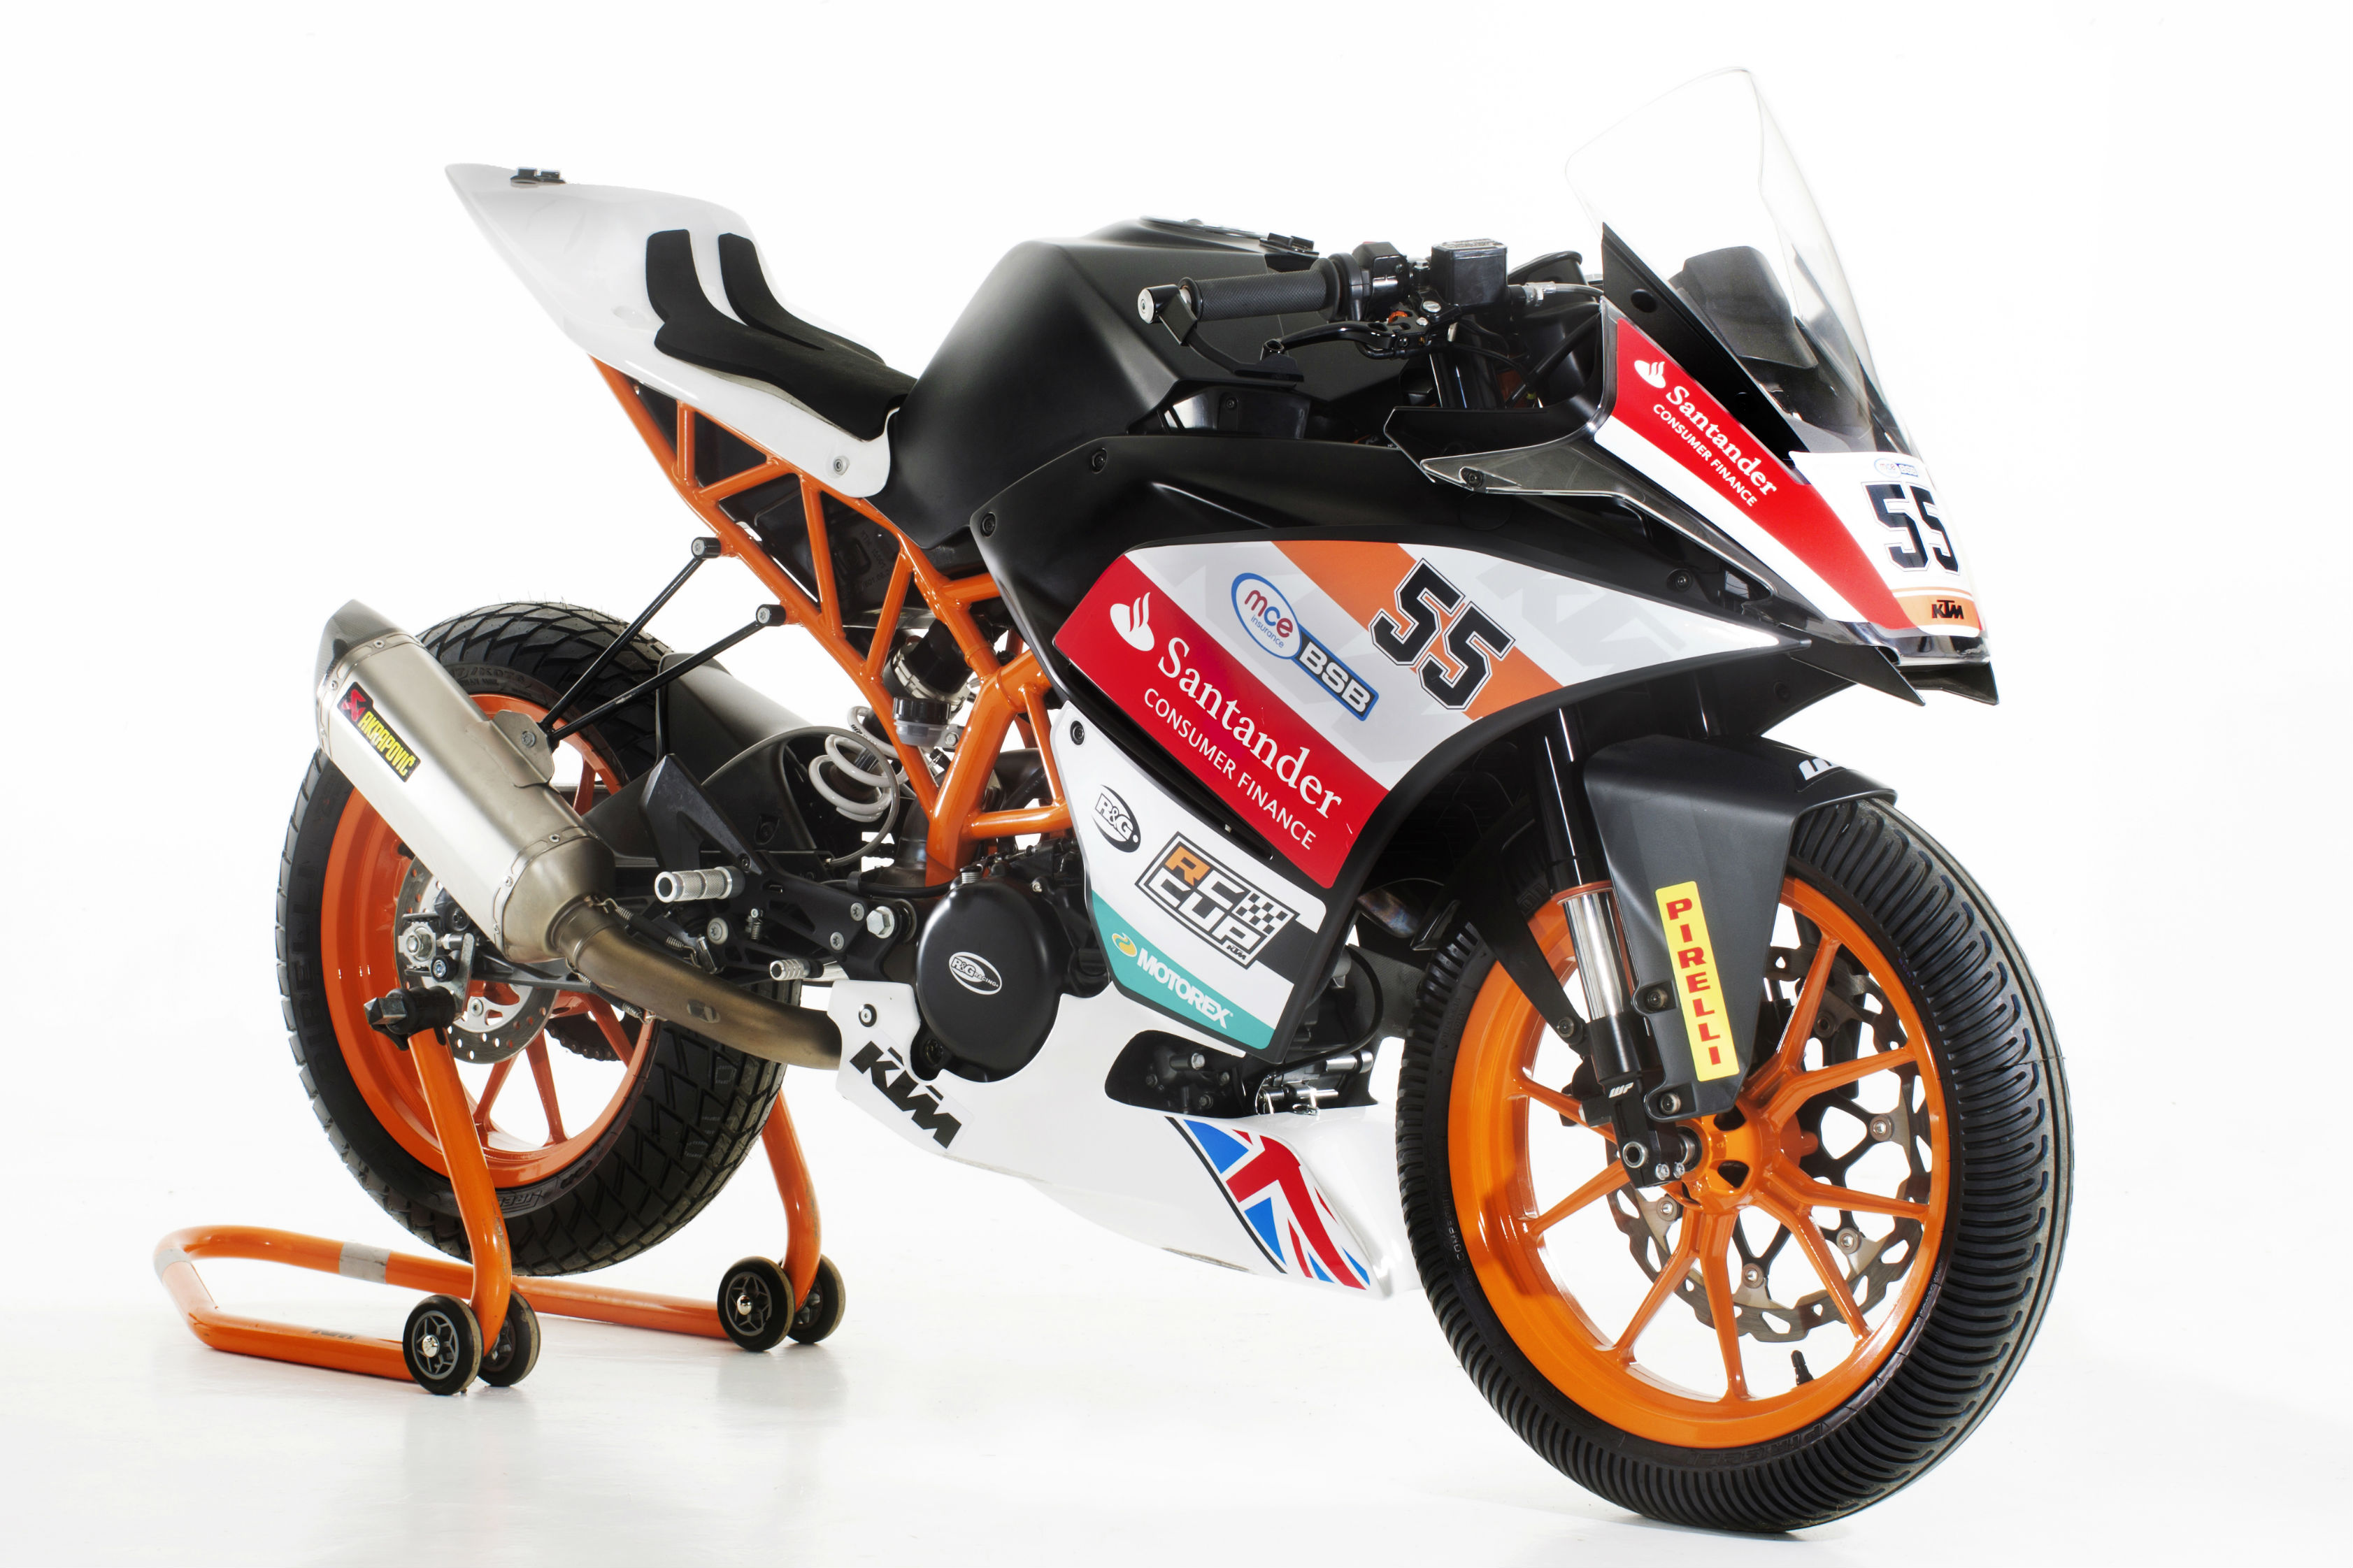 Ktm Powerparts Prices